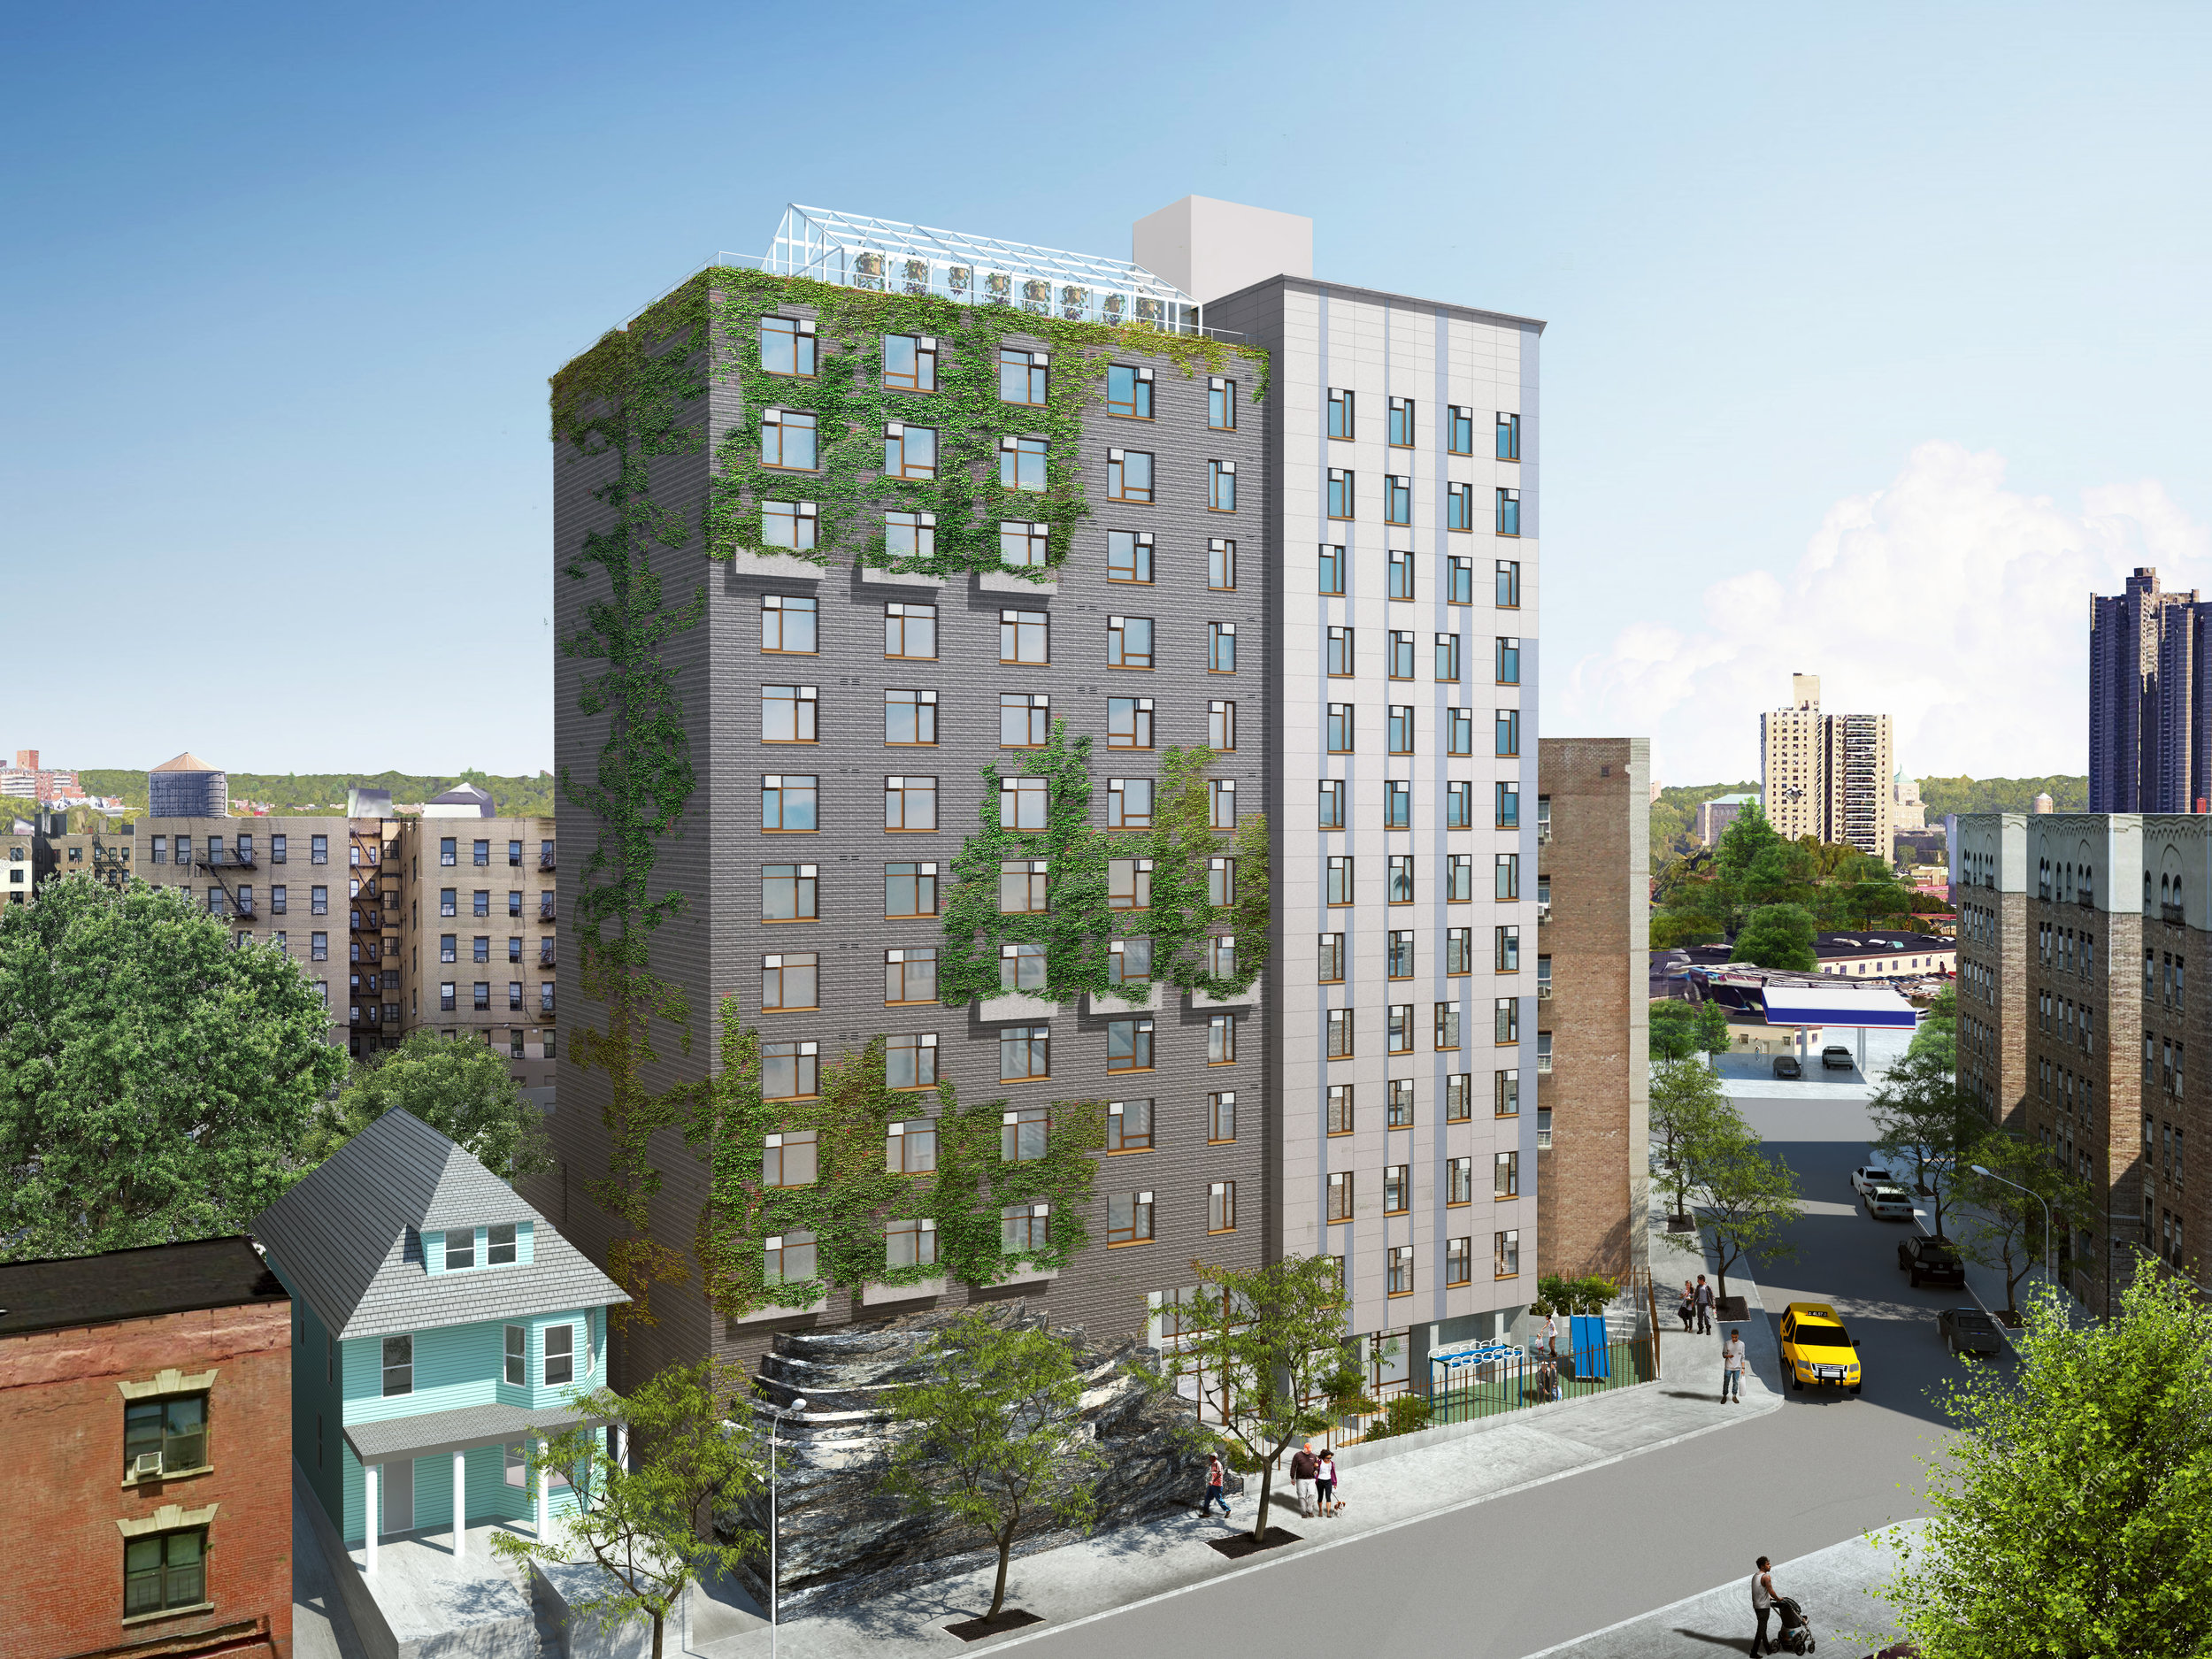 Bedford+Green+House+--+Rendering+of+2865+Creston+Avenue.jpg